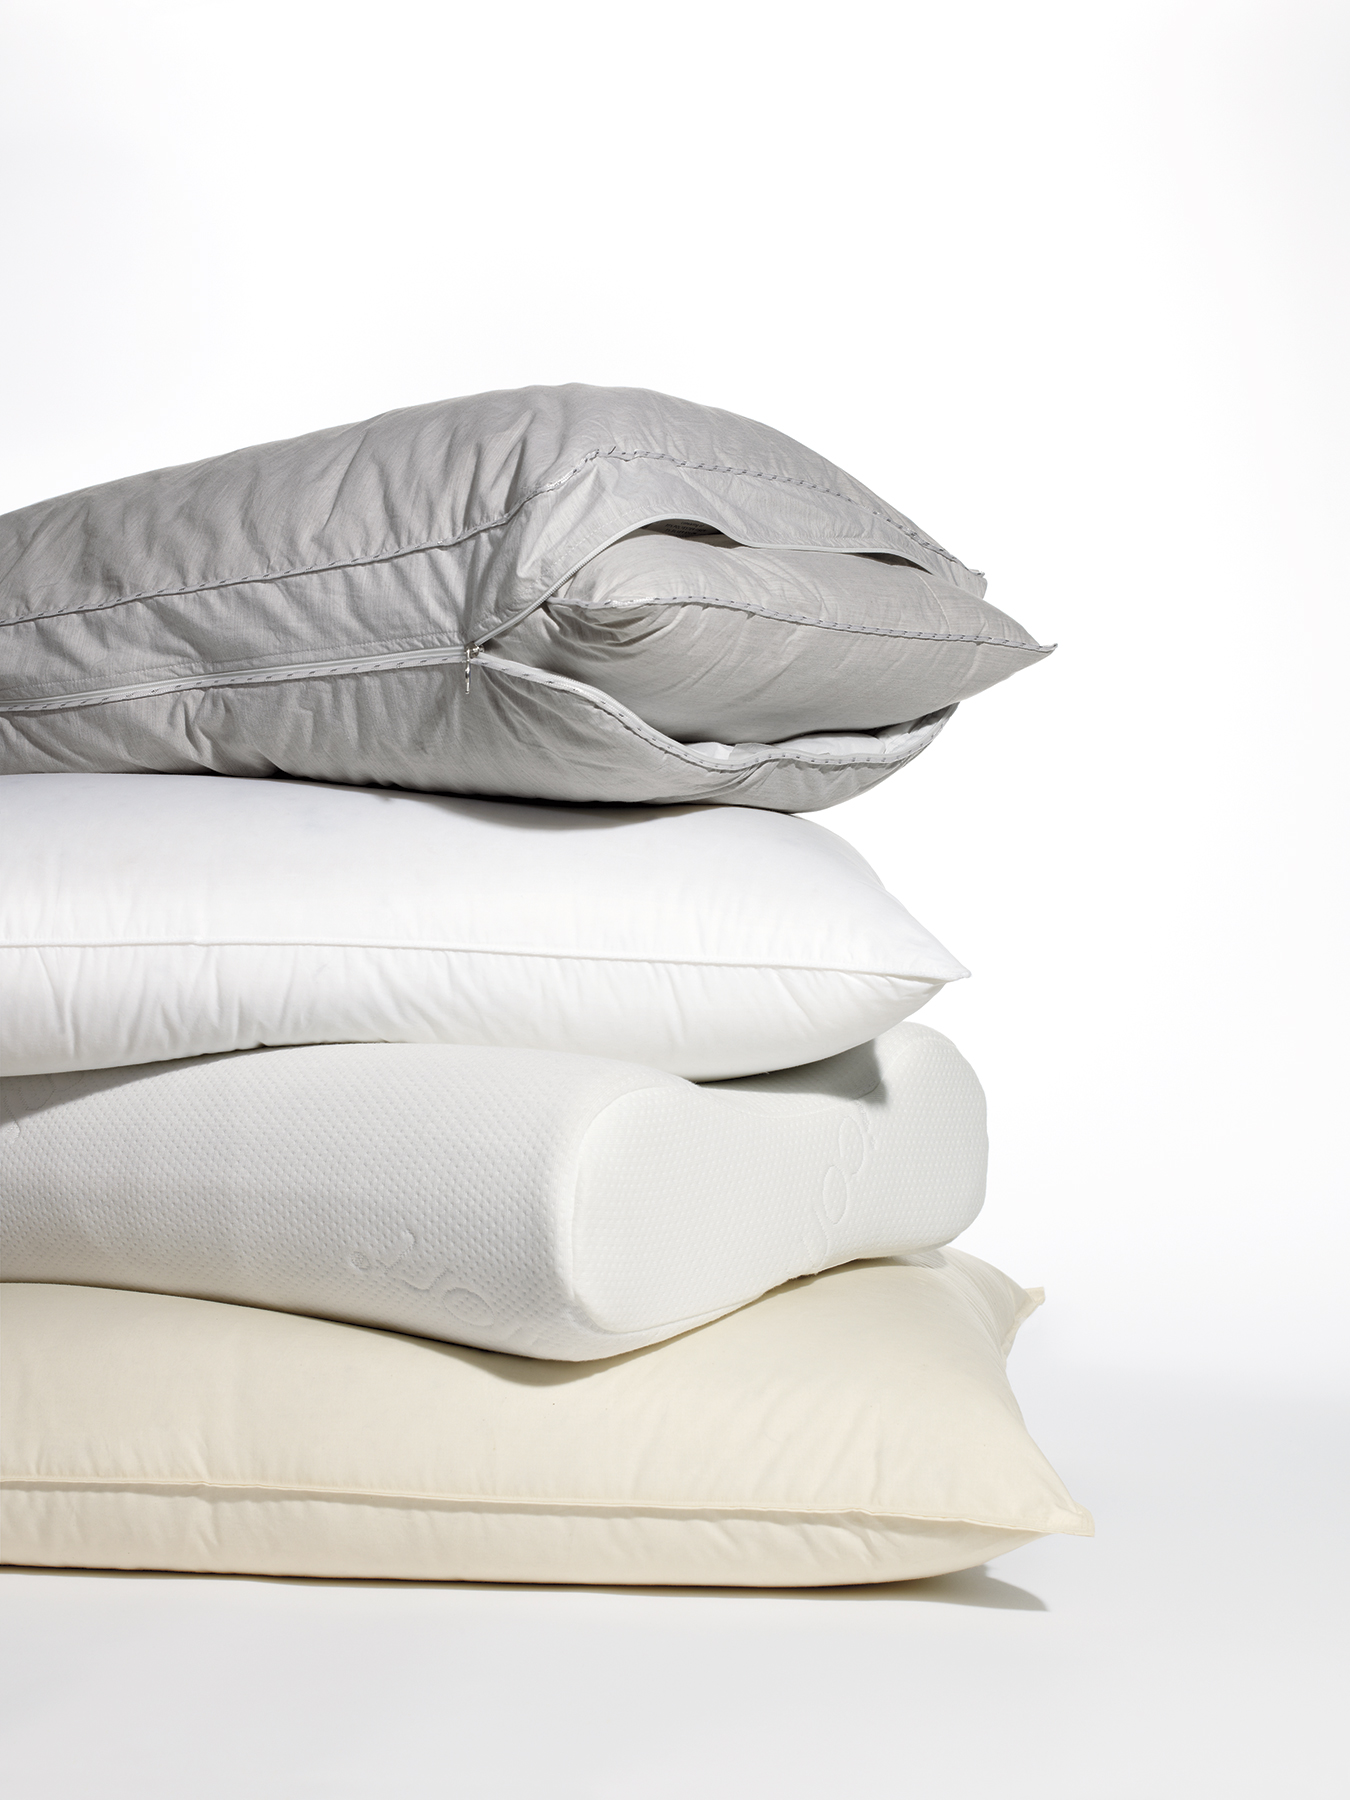 plush gel restoration the by super fiber judge reviews a pillows sleep pillow best backed thin